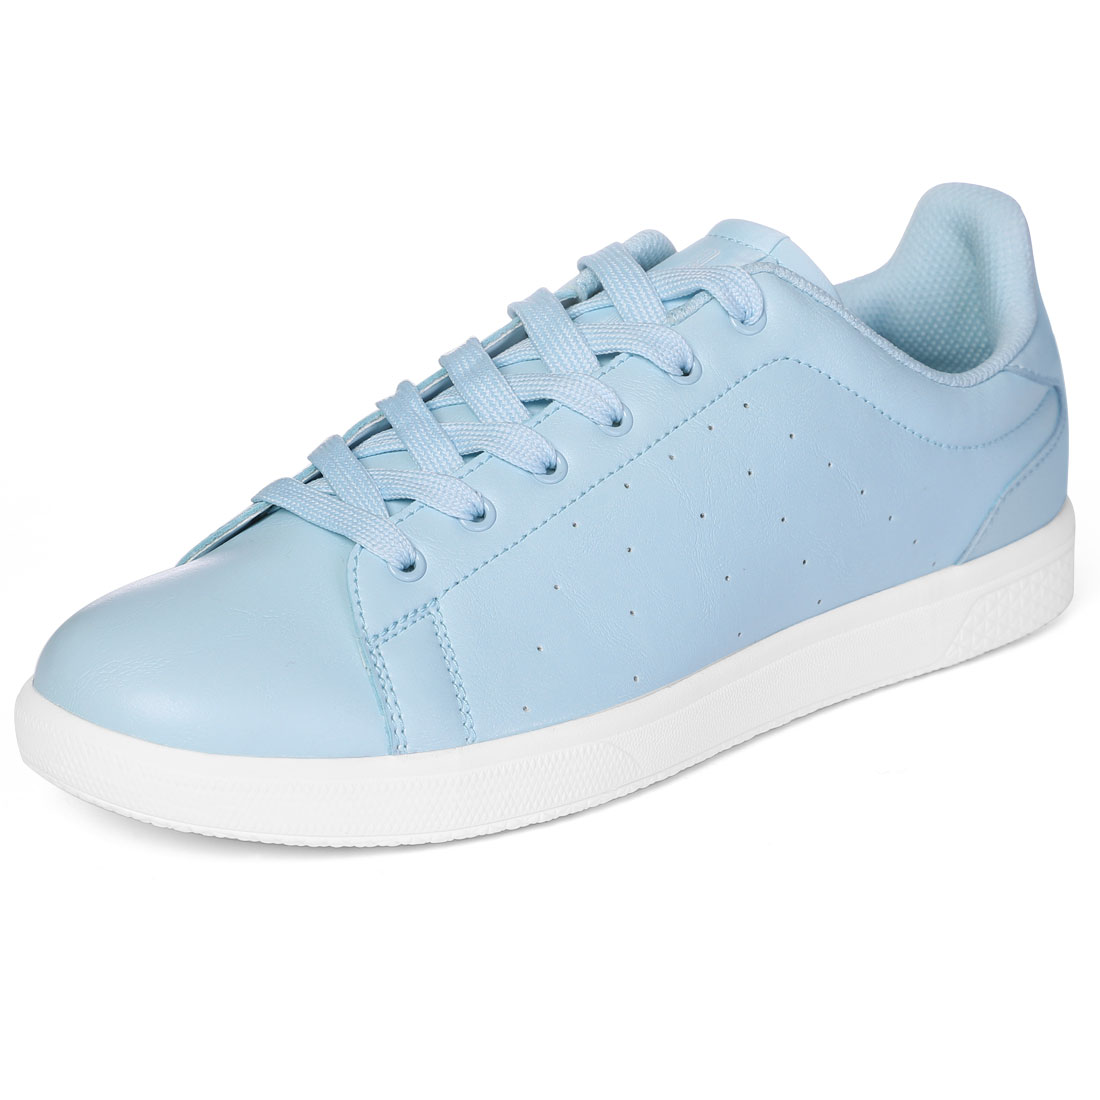 PYPE Women Round Toe Low Top Lace Up Sneakers Blue US 6